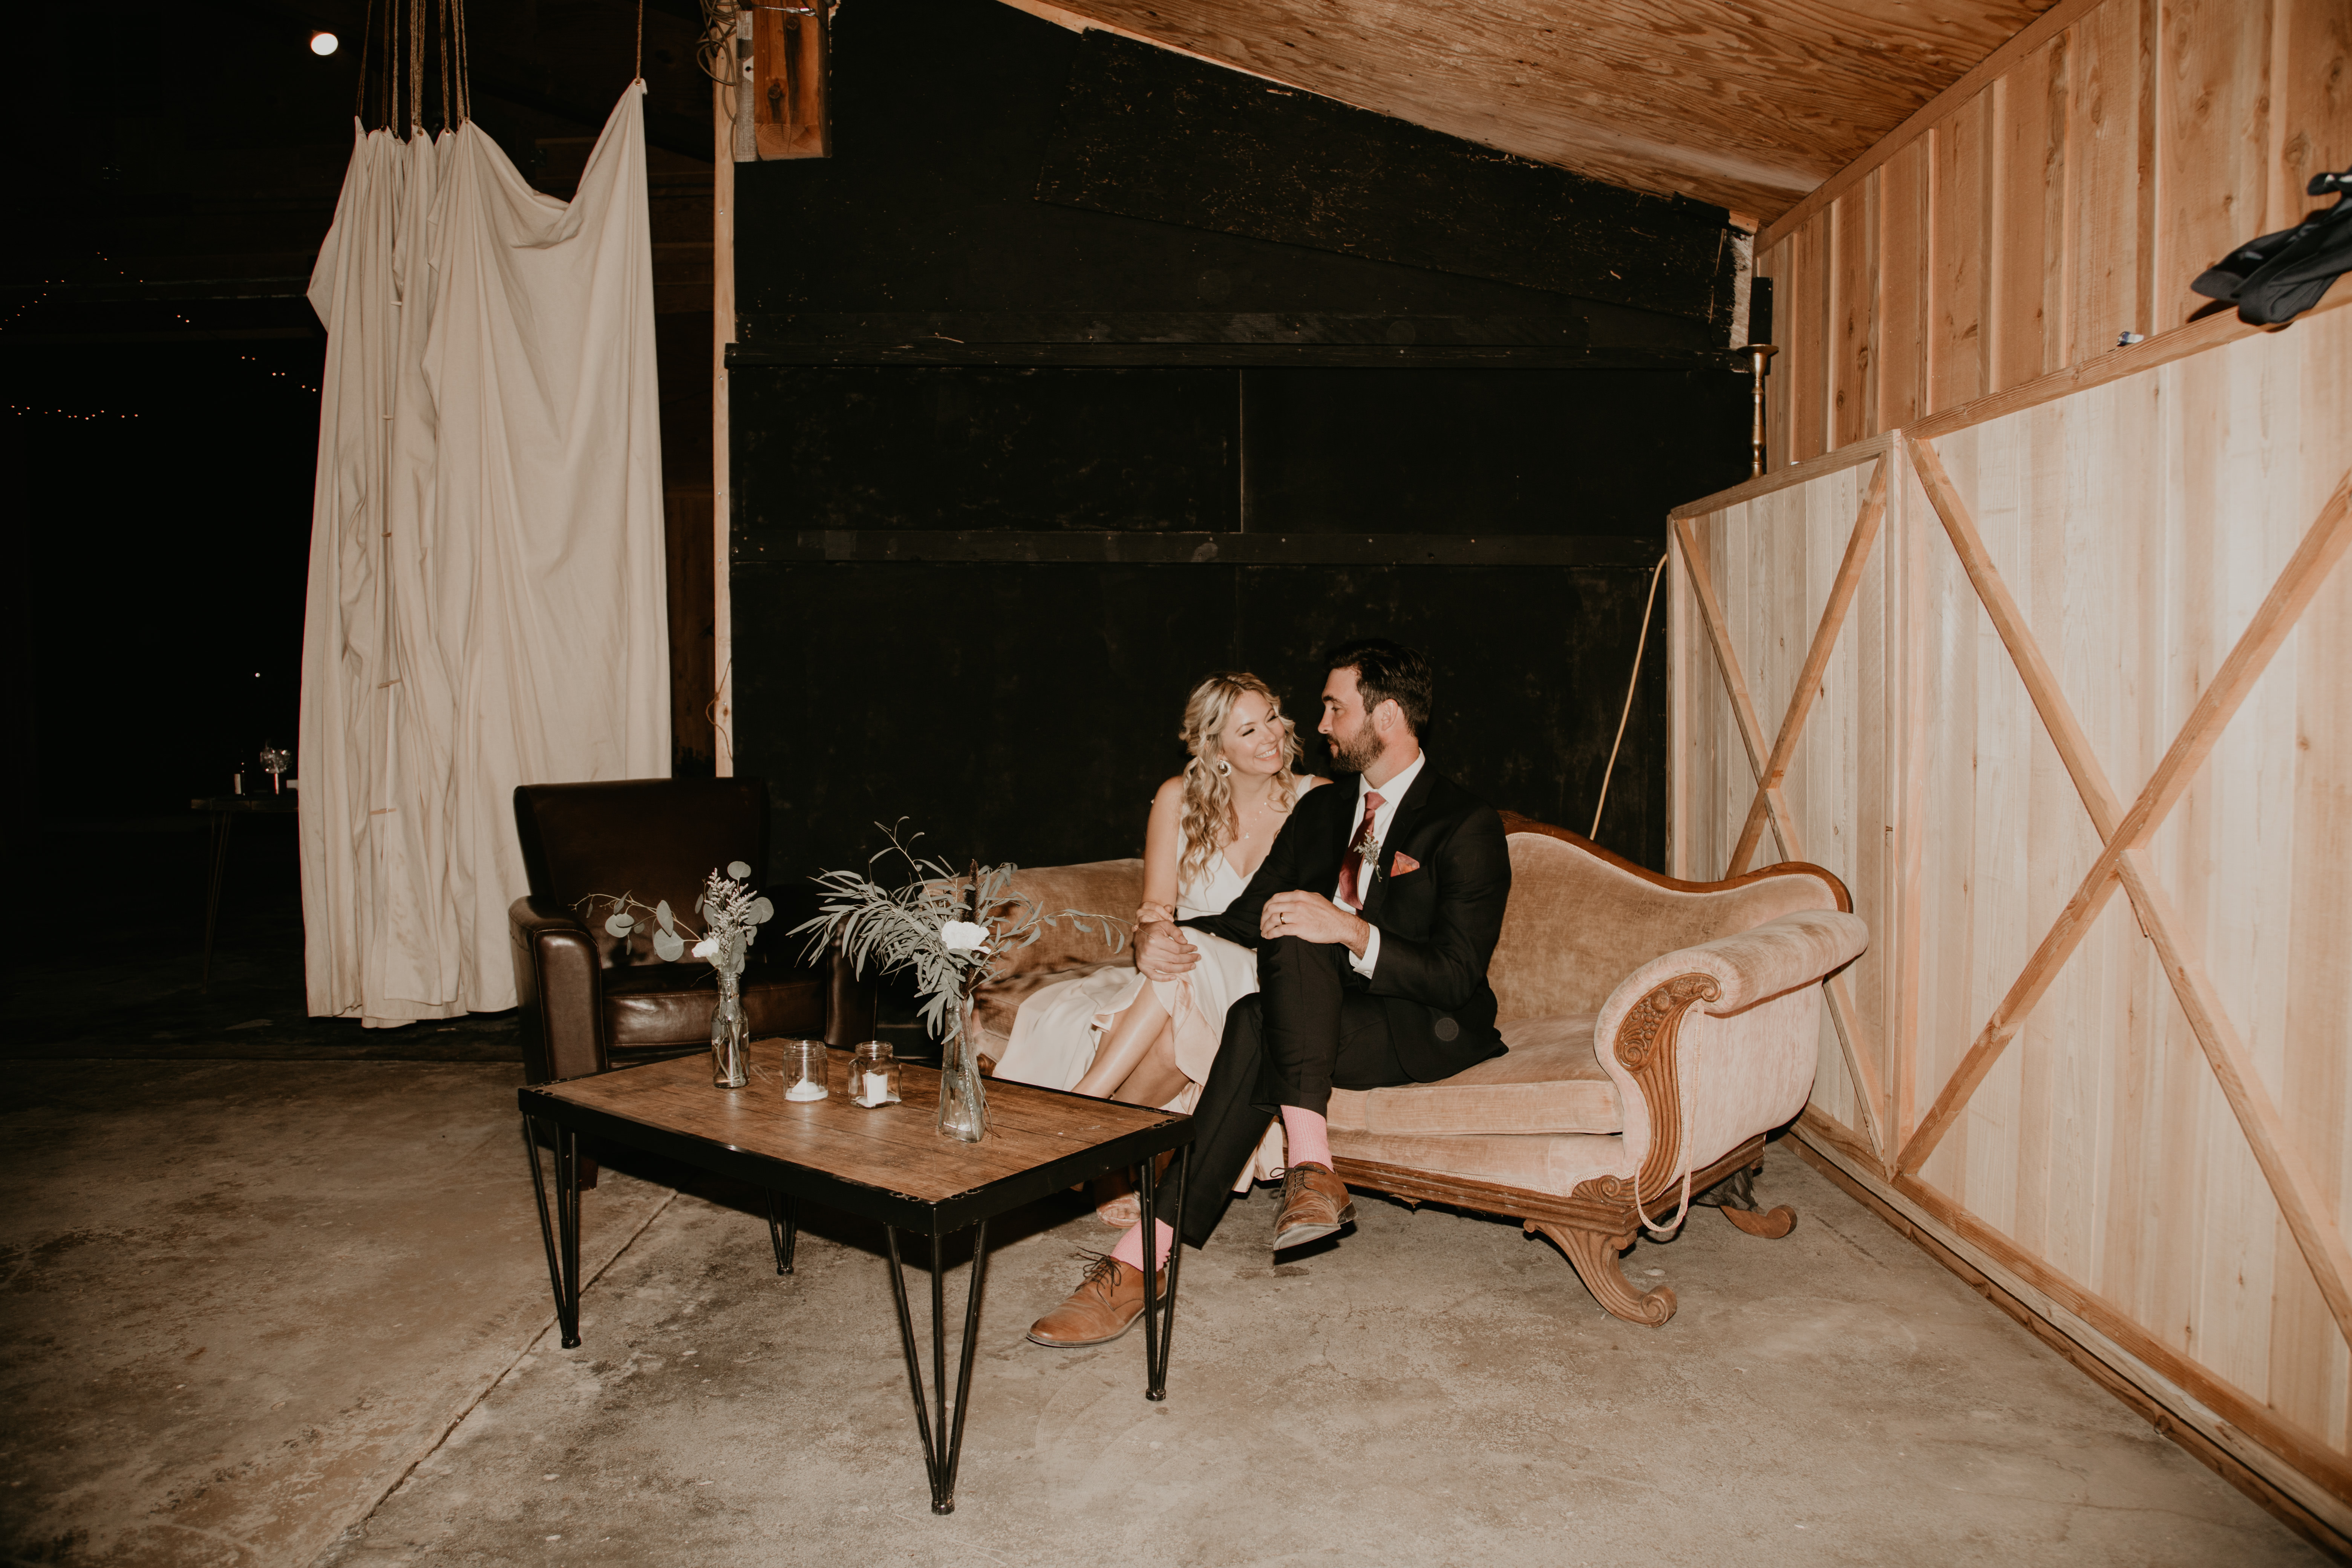 Bride and groom portraits on couch in Pioneertown Wedding, photo by Fatima Elreda Photo